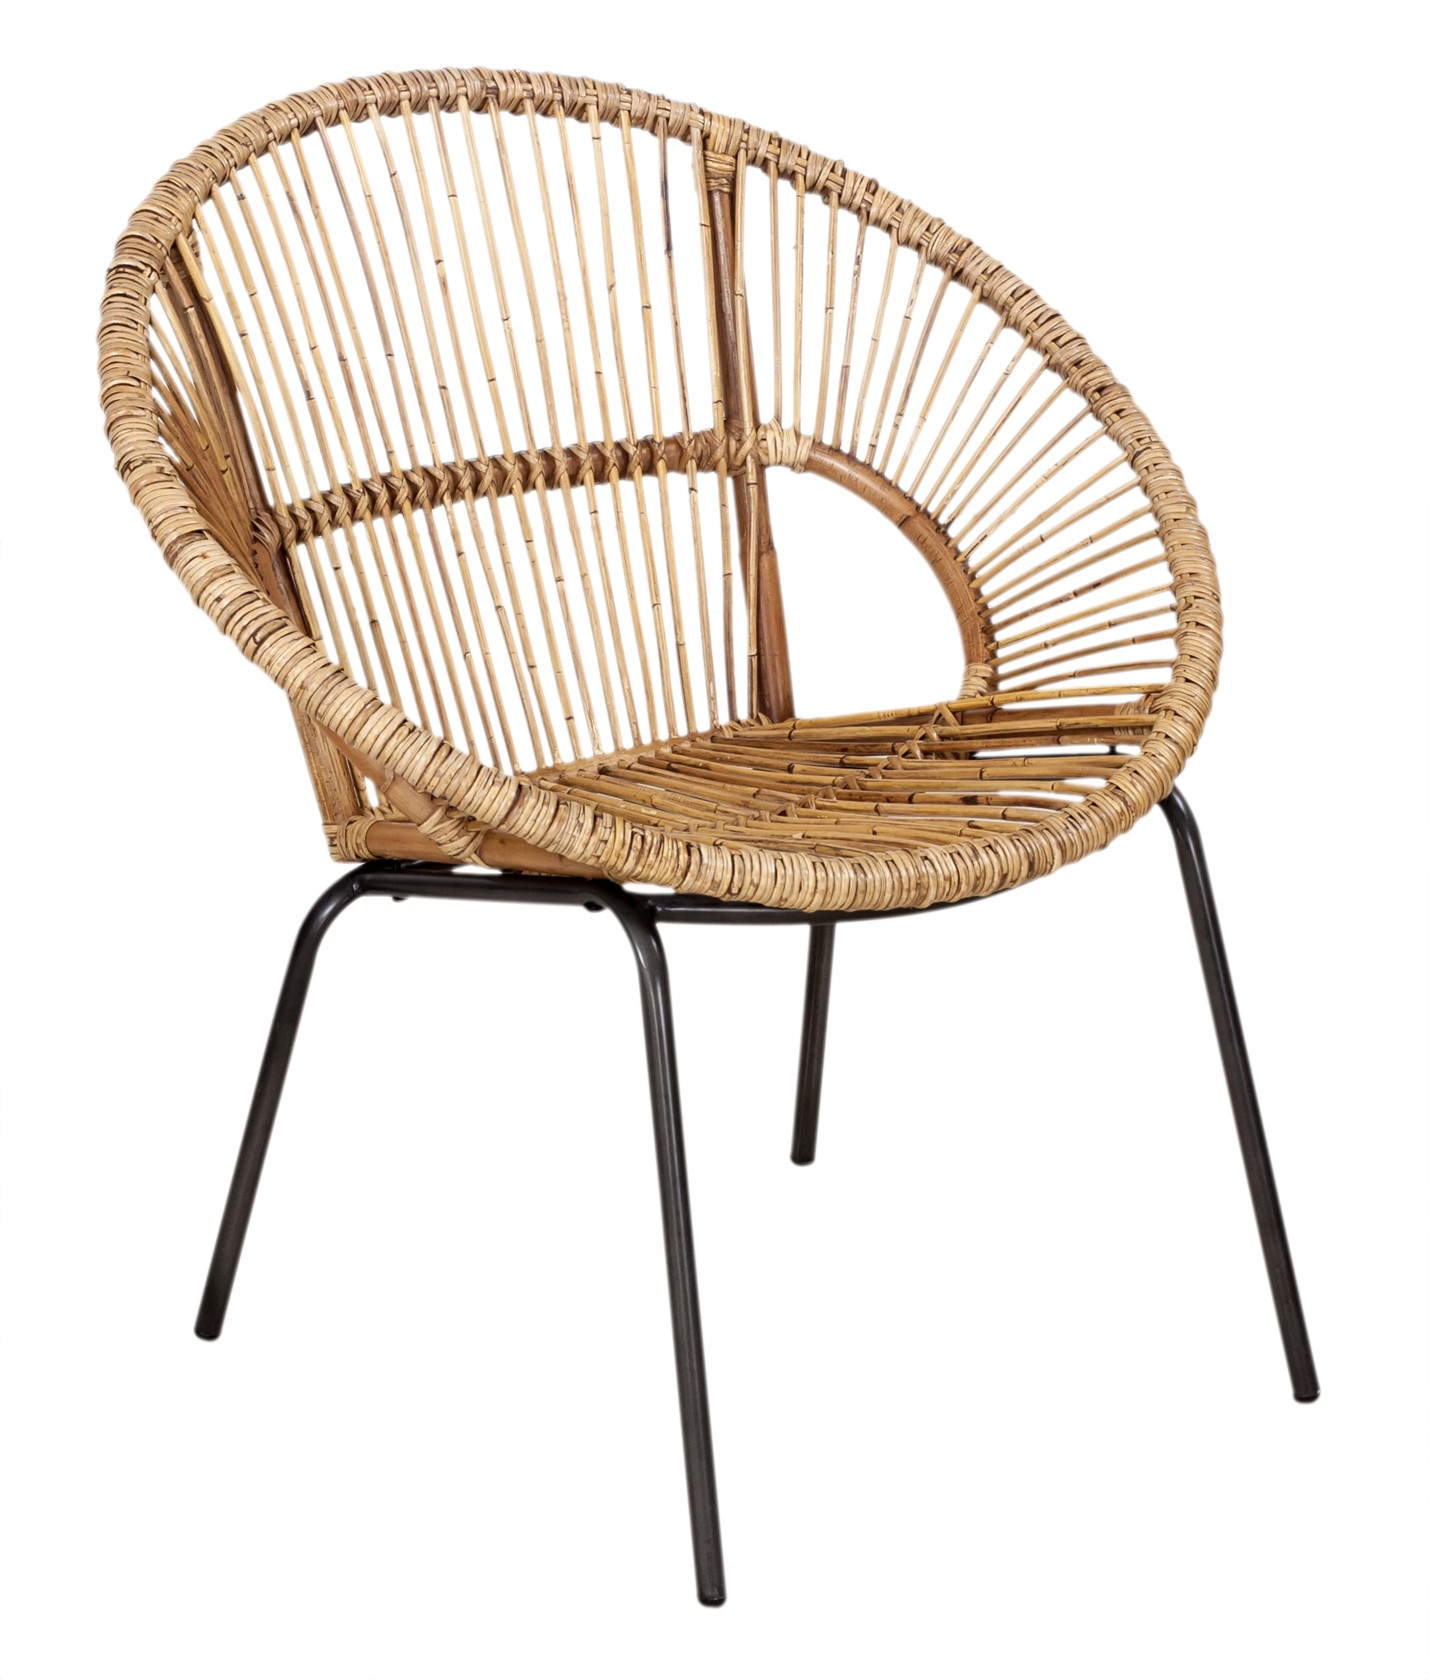 Basket chair ikea - Rattan Recliner Rattan Chair Rattan Bistro Chair